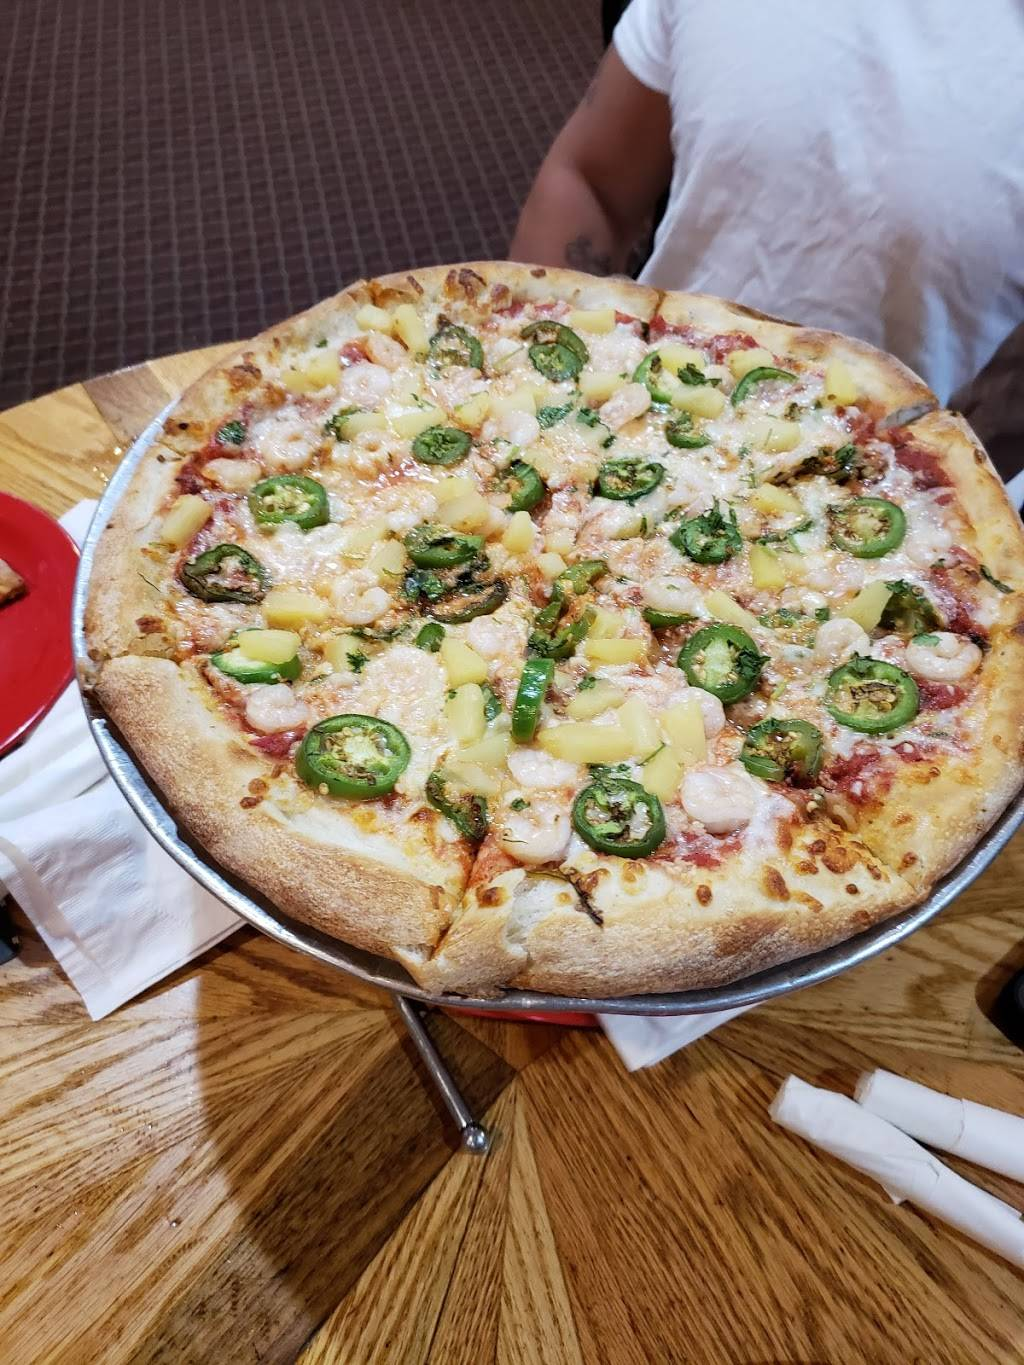 Pazzos Pizzeria | restaurant | 50 Chambers Ave, Eagle, CO 81631, USA | 9703379900 OR +1 970-337-9900